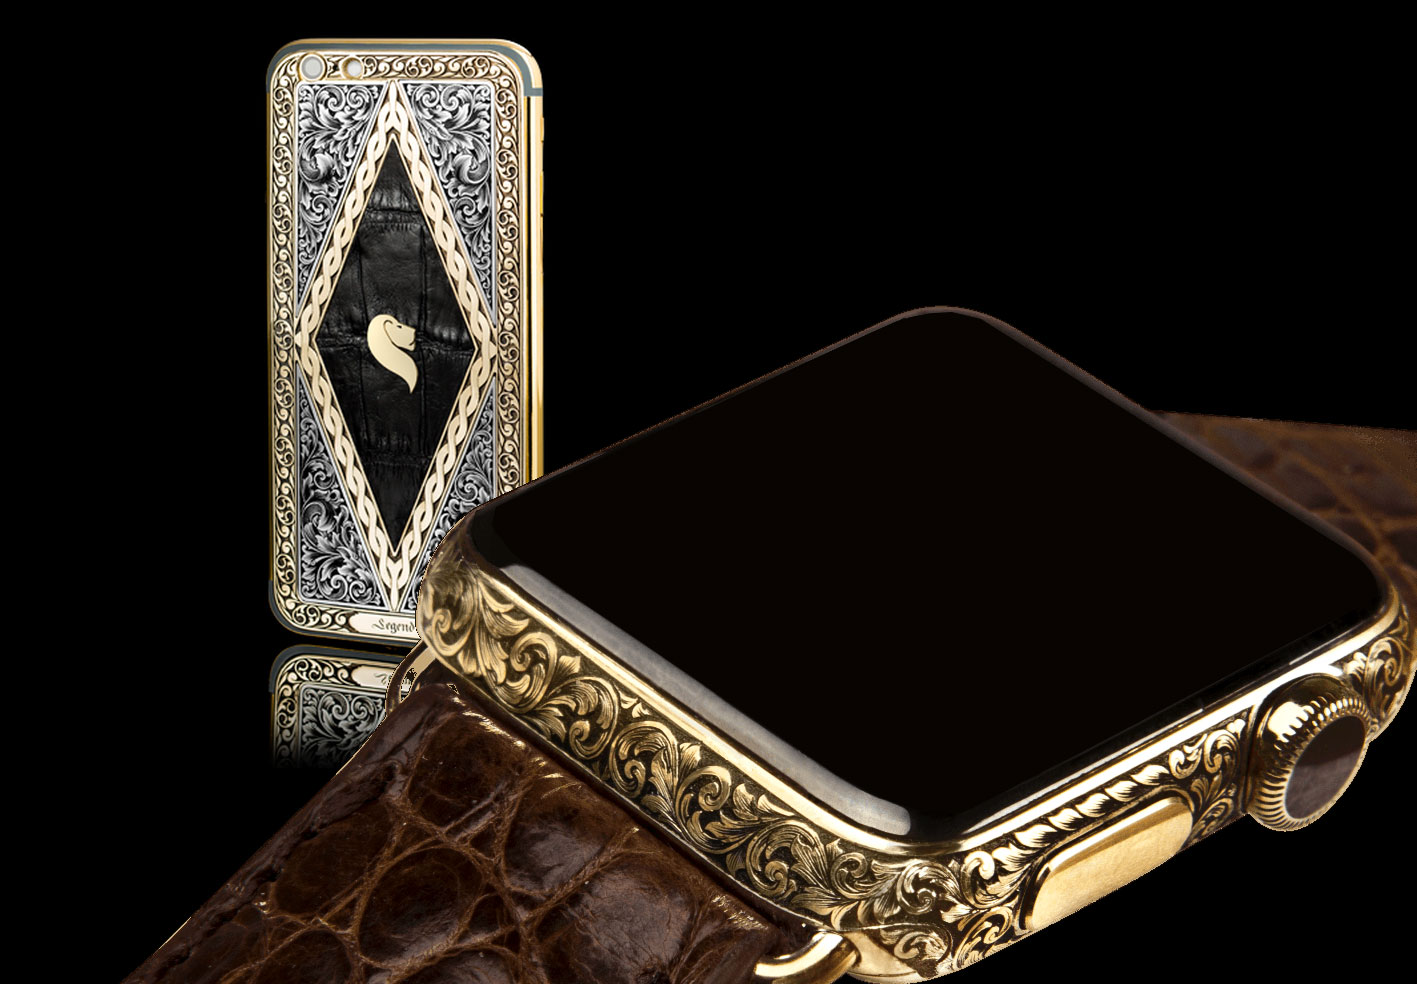 Legend Unveils First Hand-Engraved Luxury Apple Watch